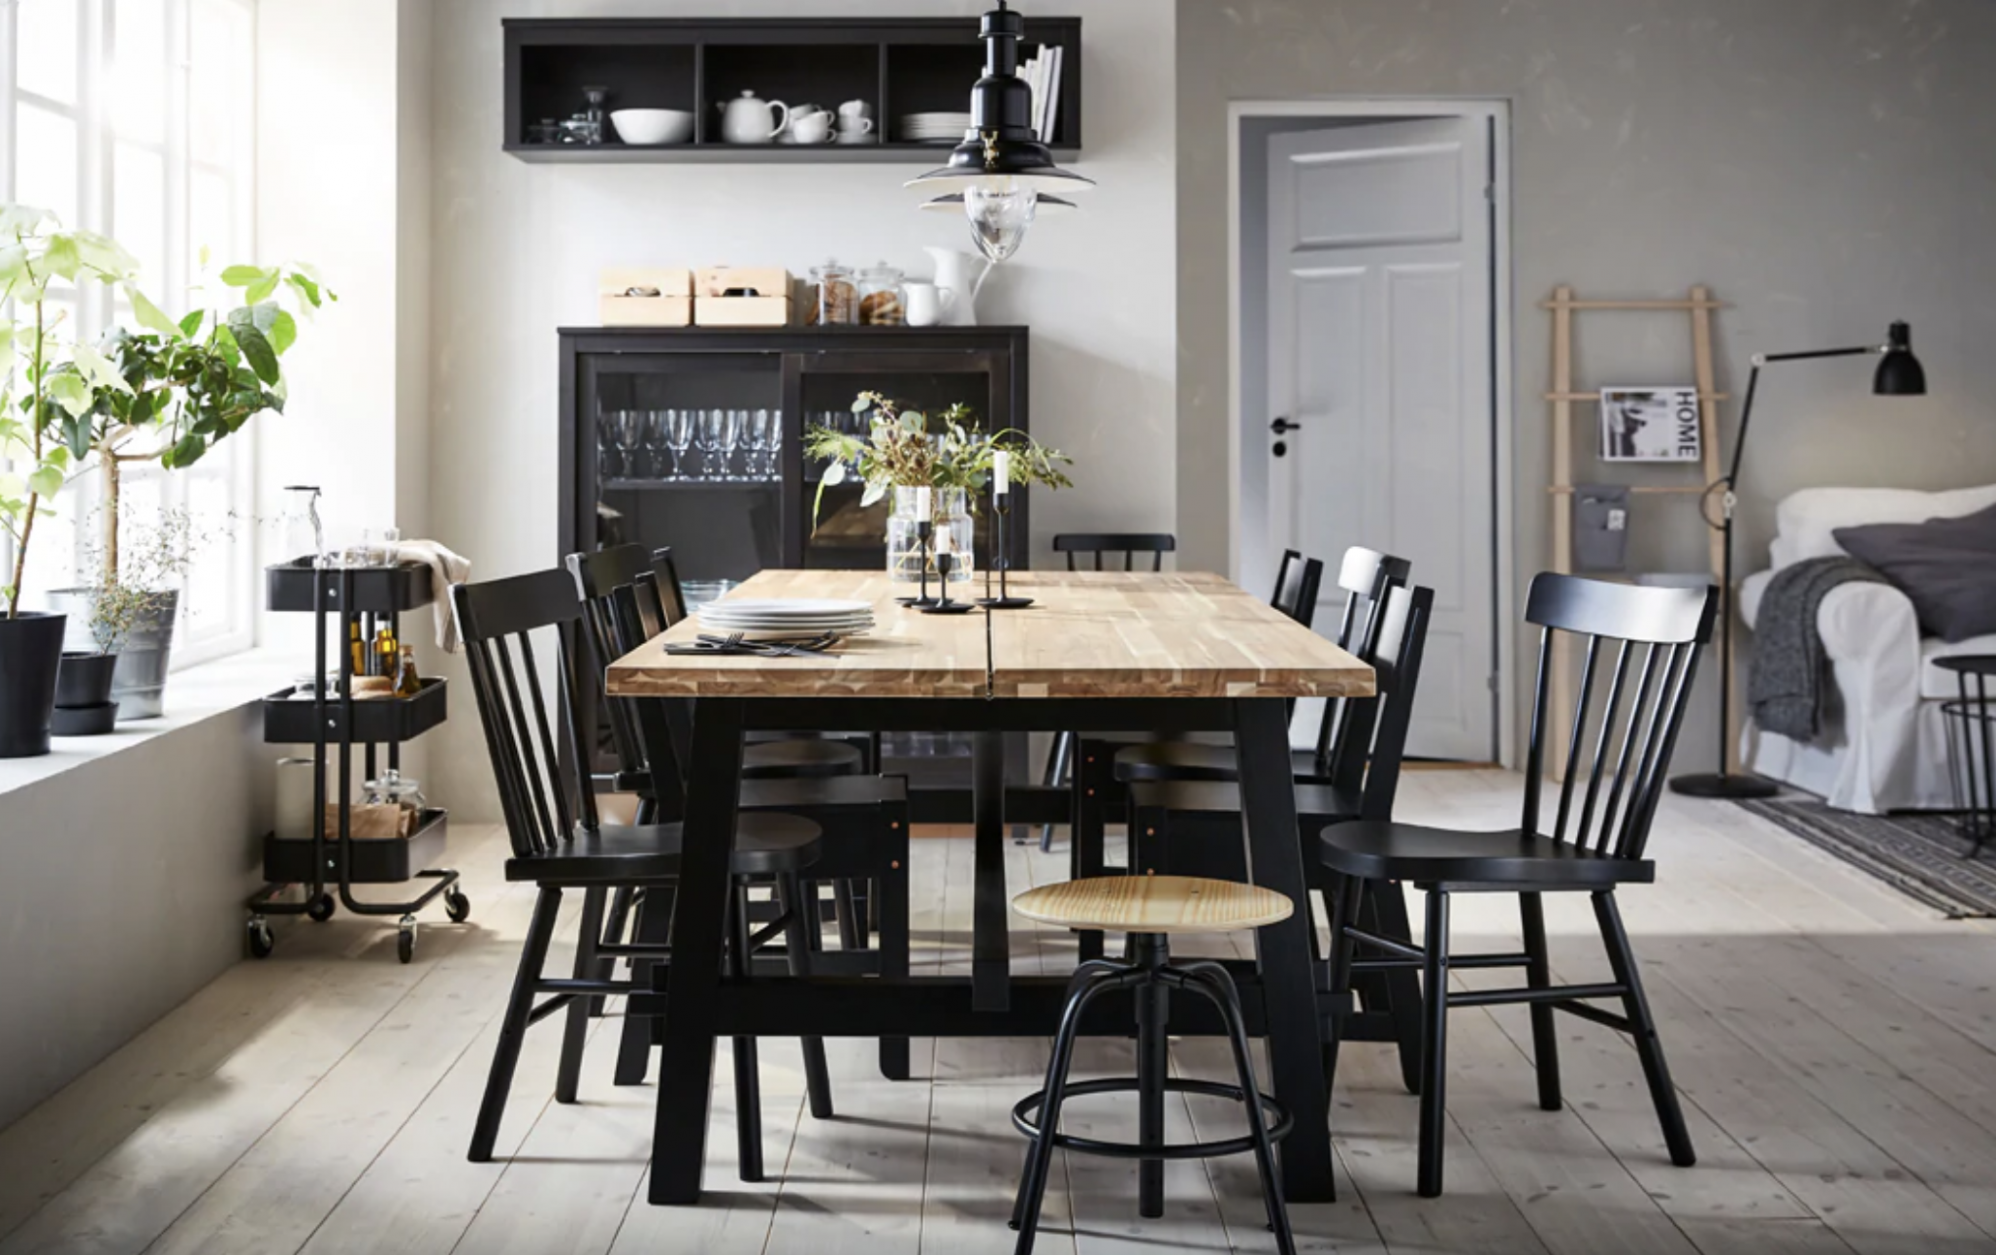 Clever Dining Room Design Ideas to Steal From IKEA  Apartment Therapy - Dining Room Ideas Ikea